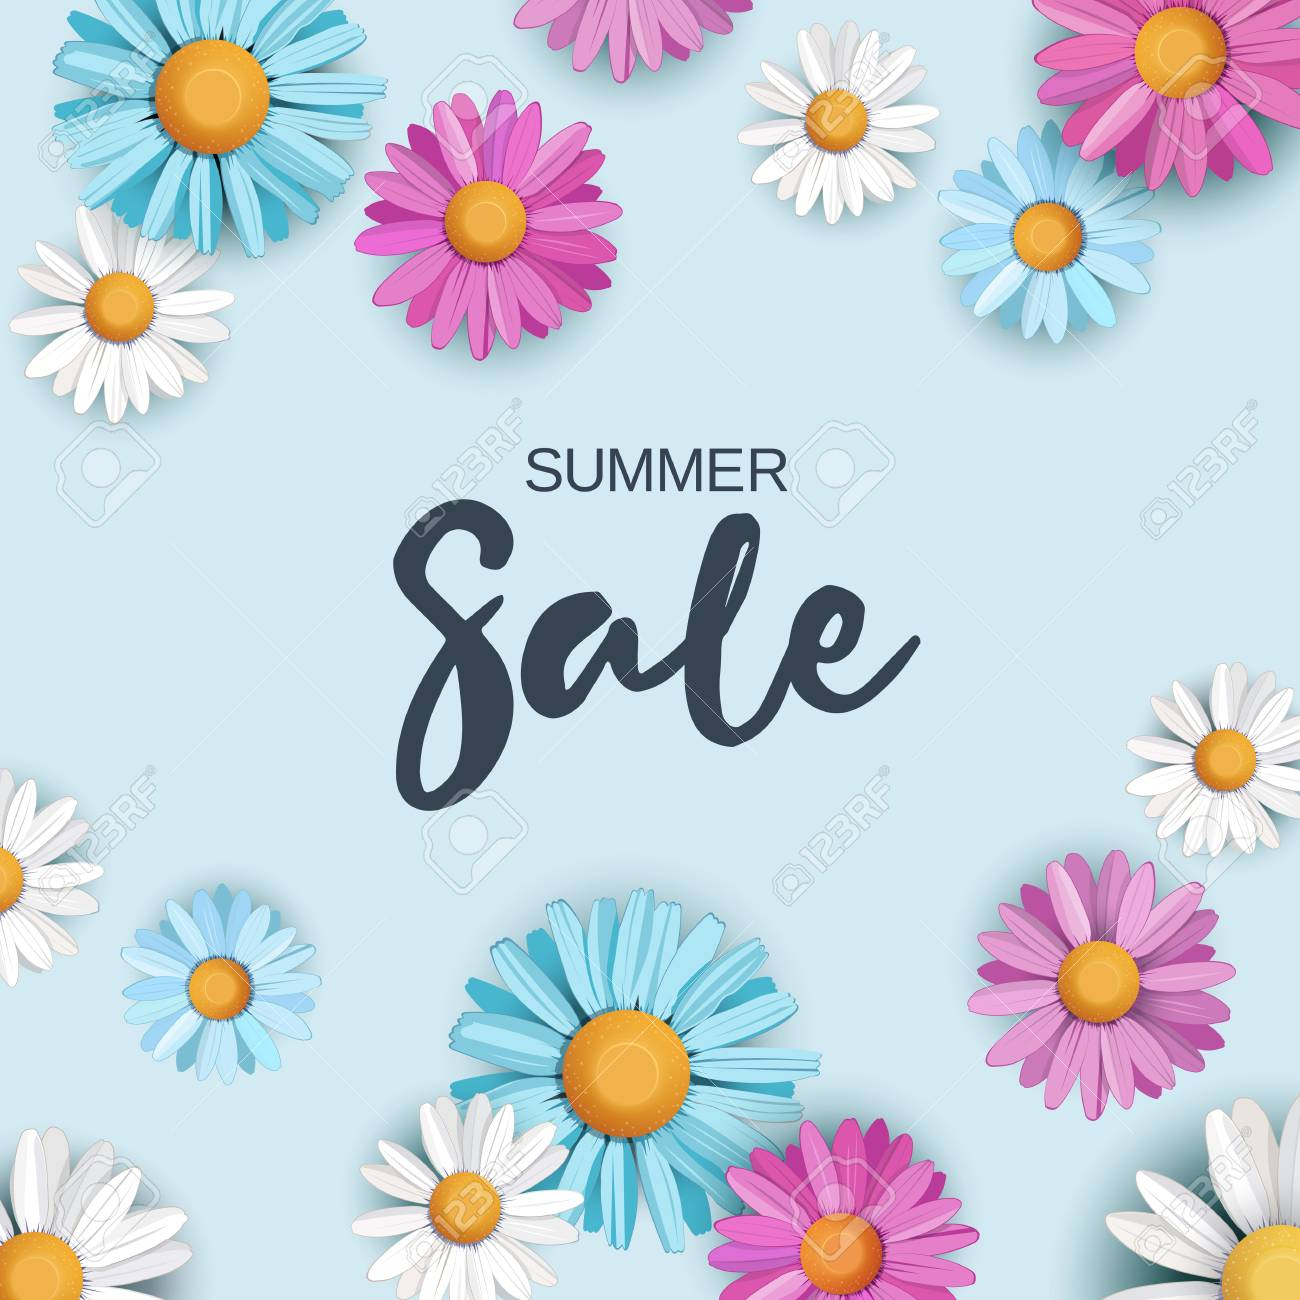 Summer sale background with colorful daisy flowers on blue summer sale background with colorful daisy flowers on blue background vector illustration stock vector izmirmasajfo Images